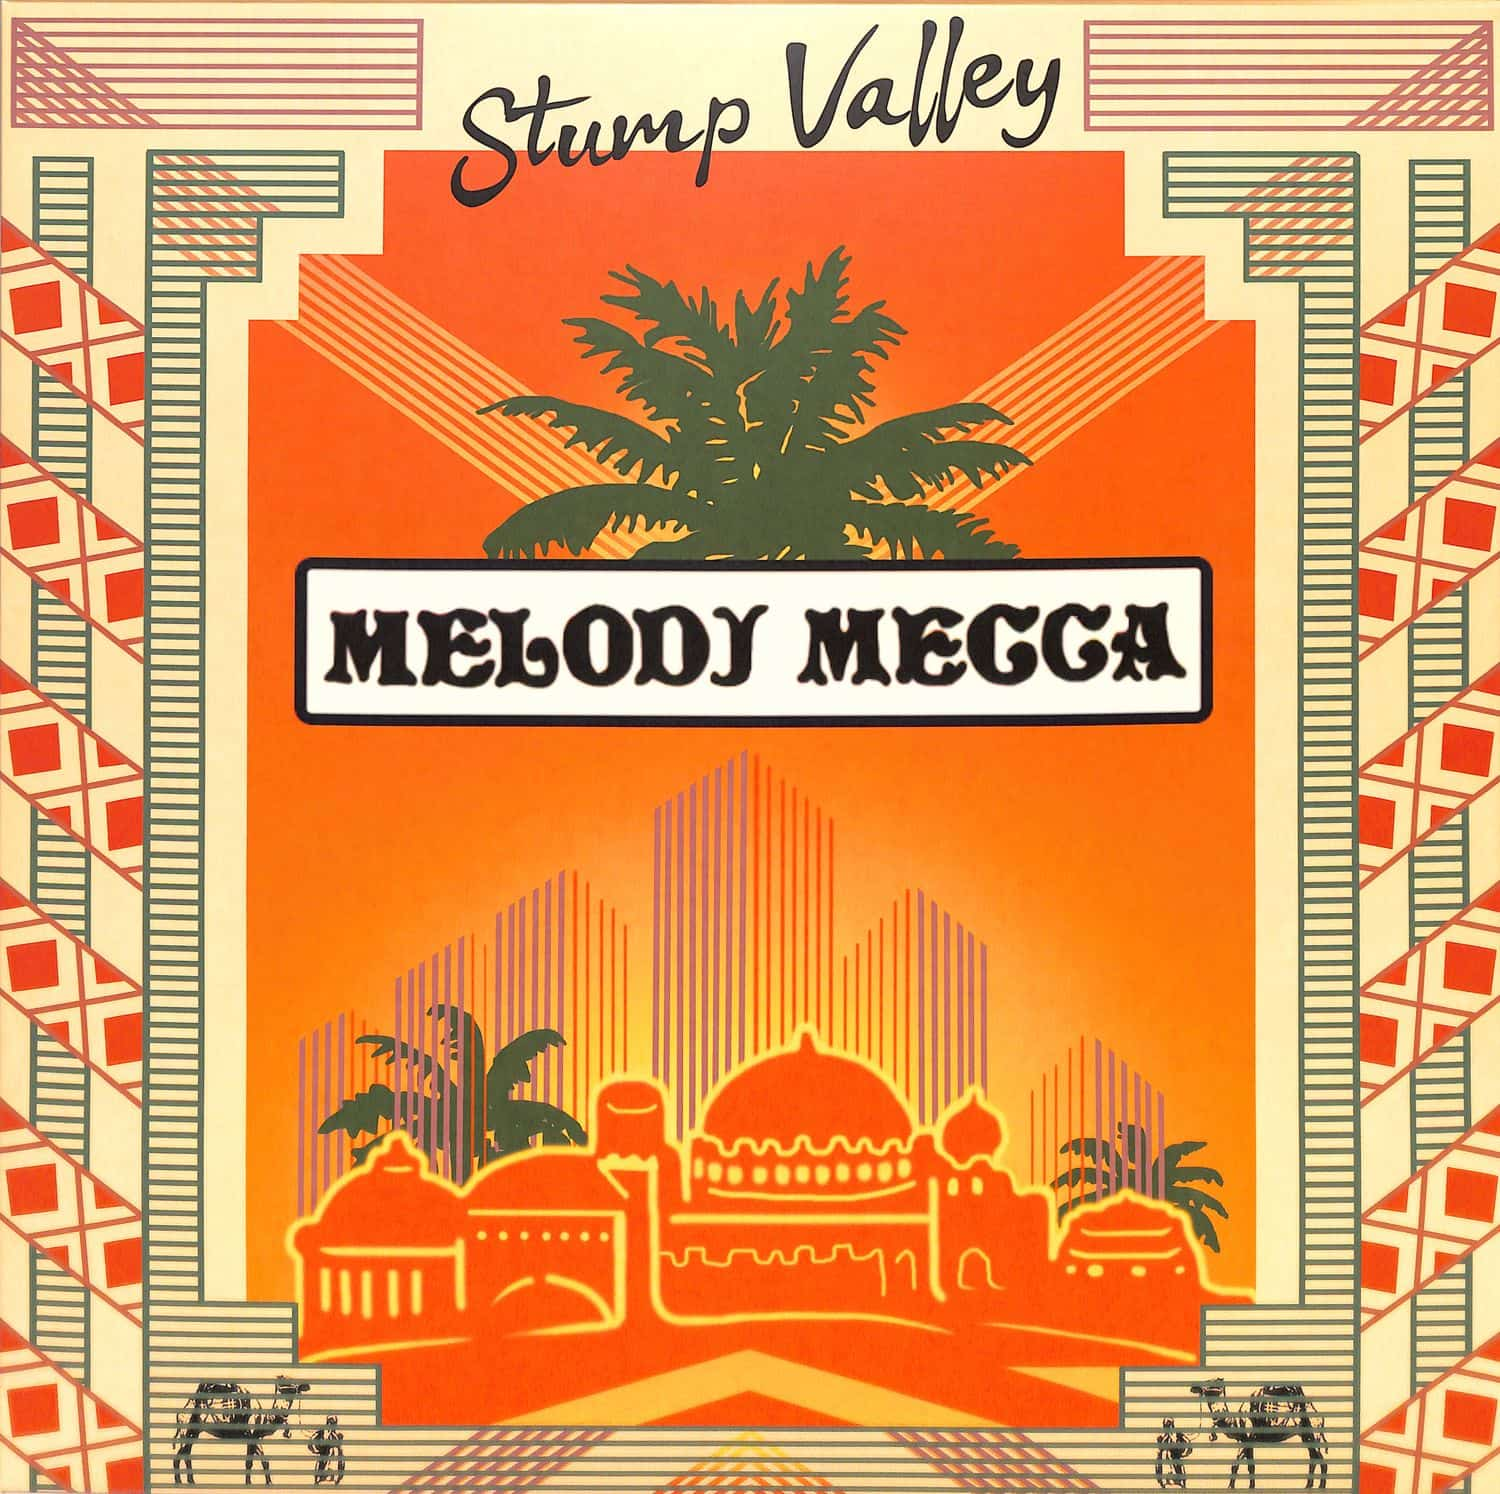 Stump Valley - MELODJ MECCA